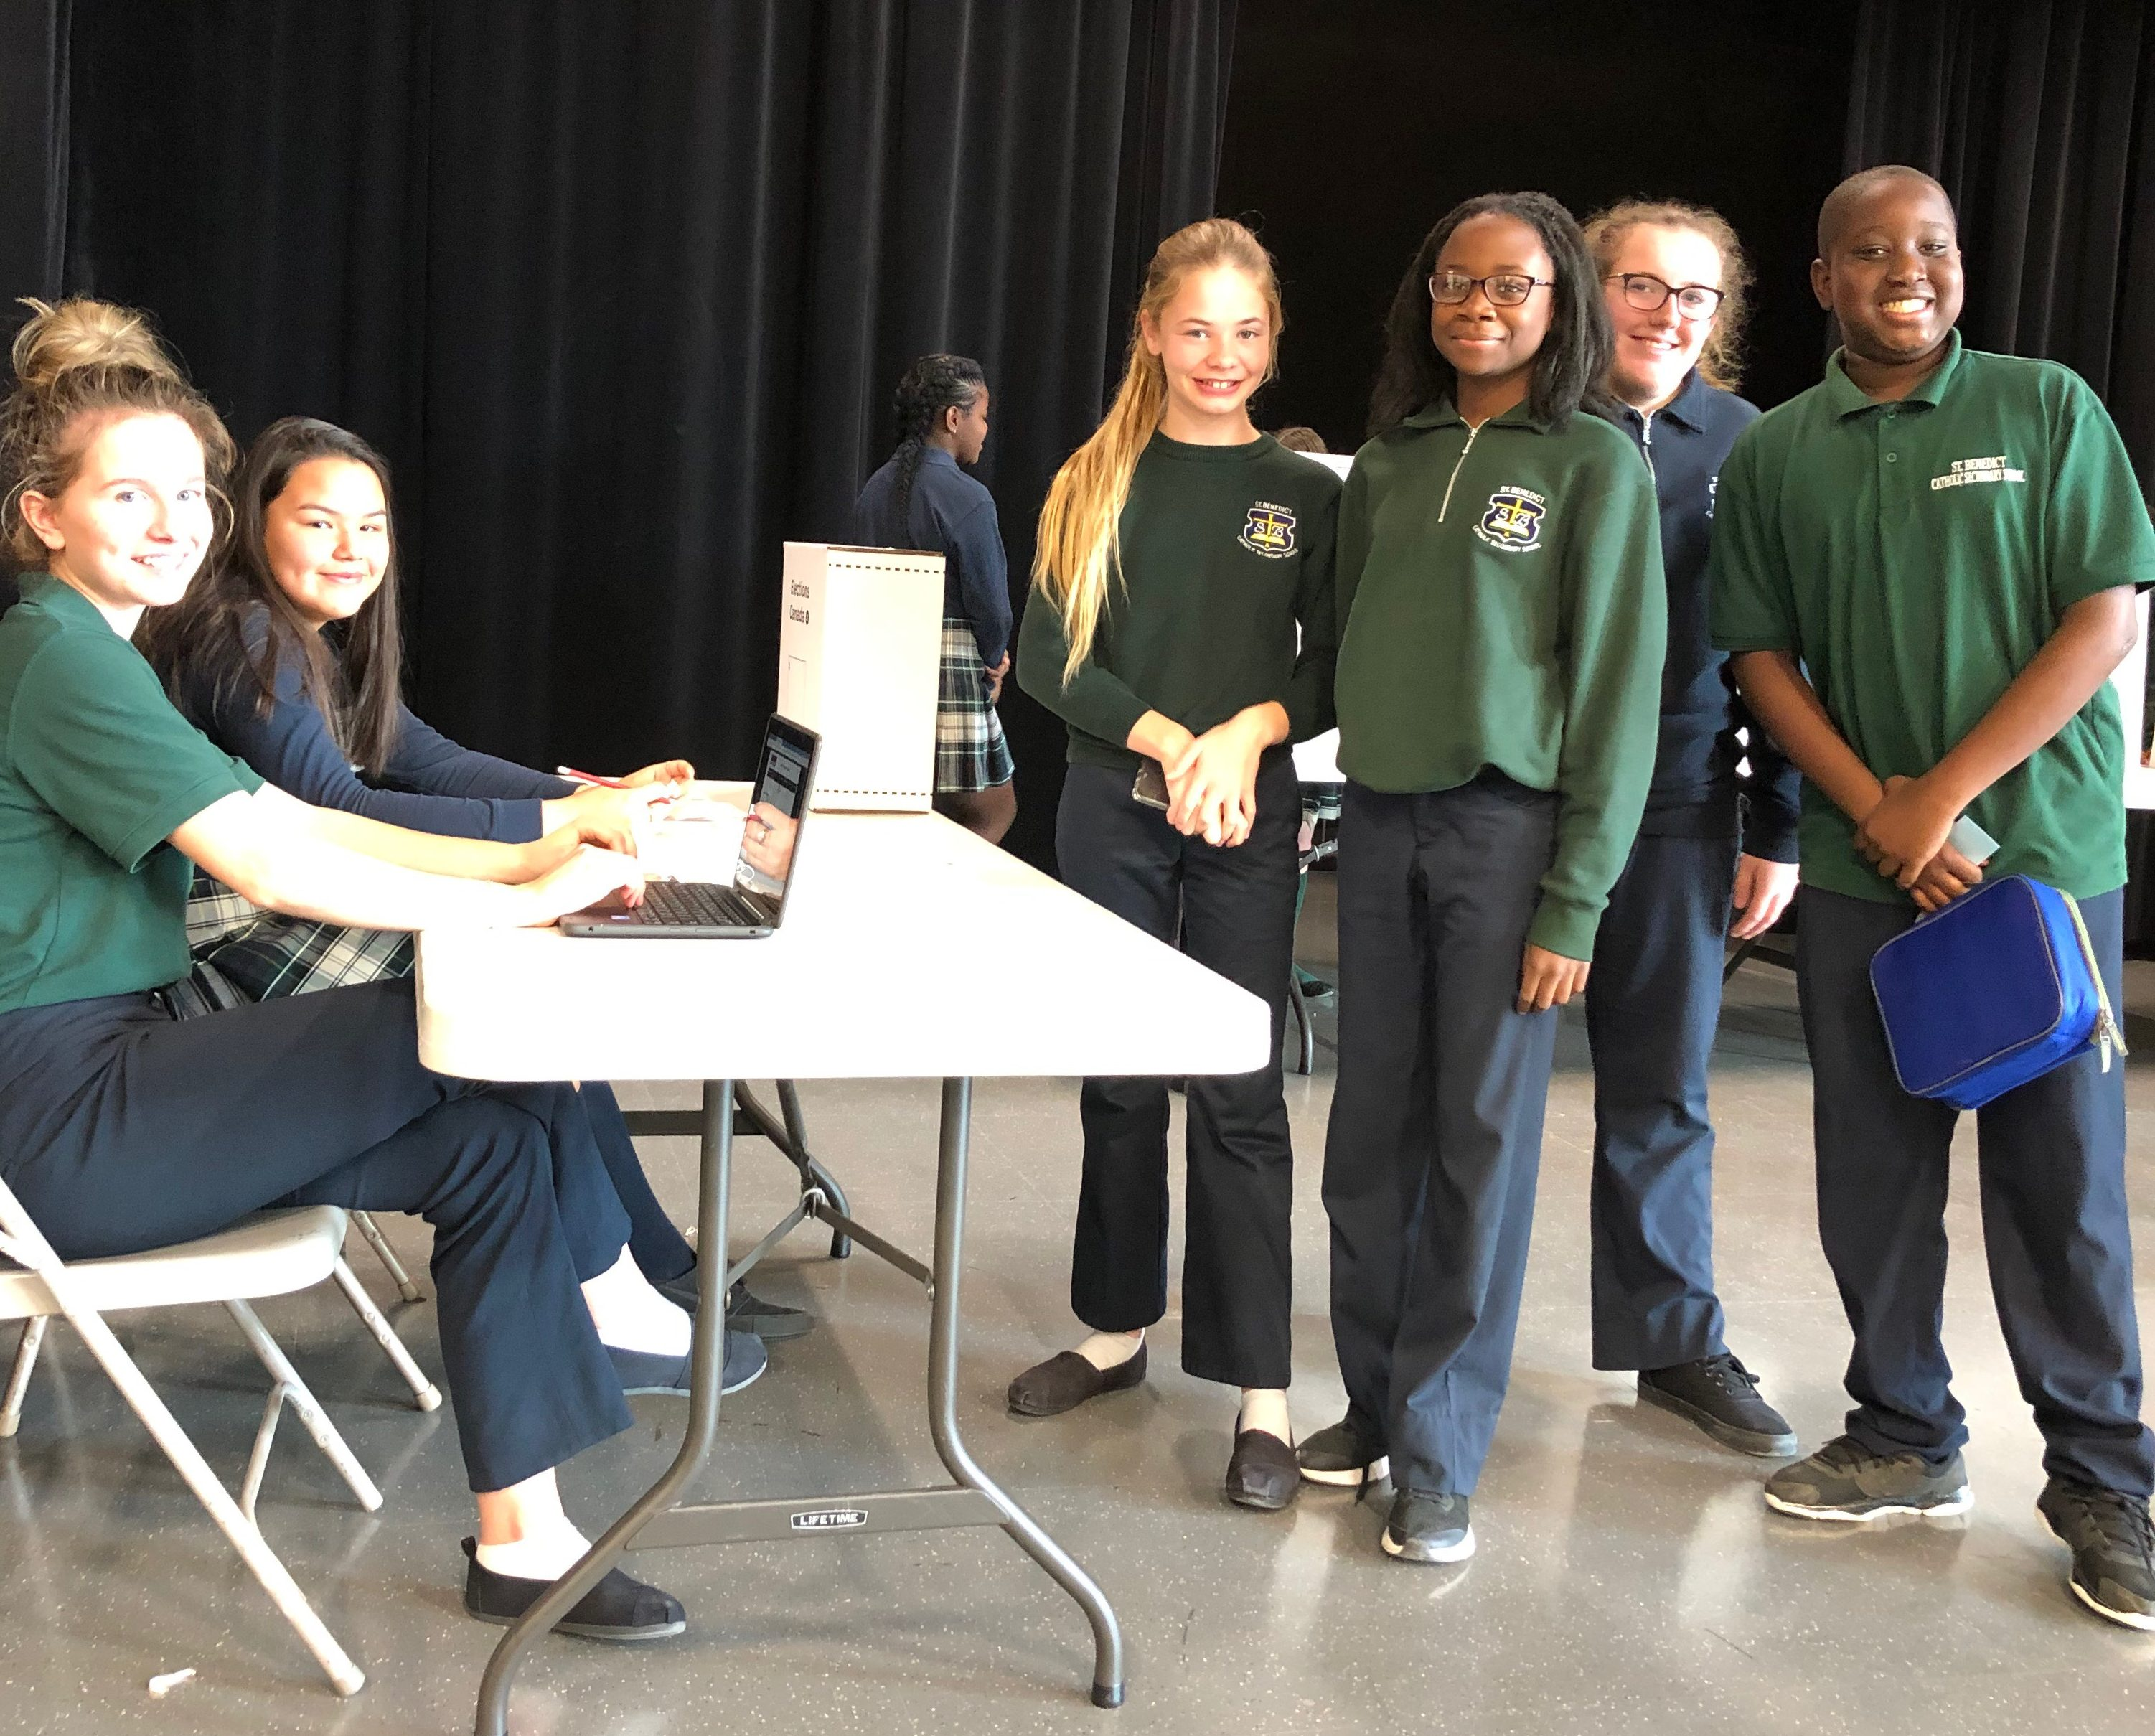 A group of students stand in line by the election booth.